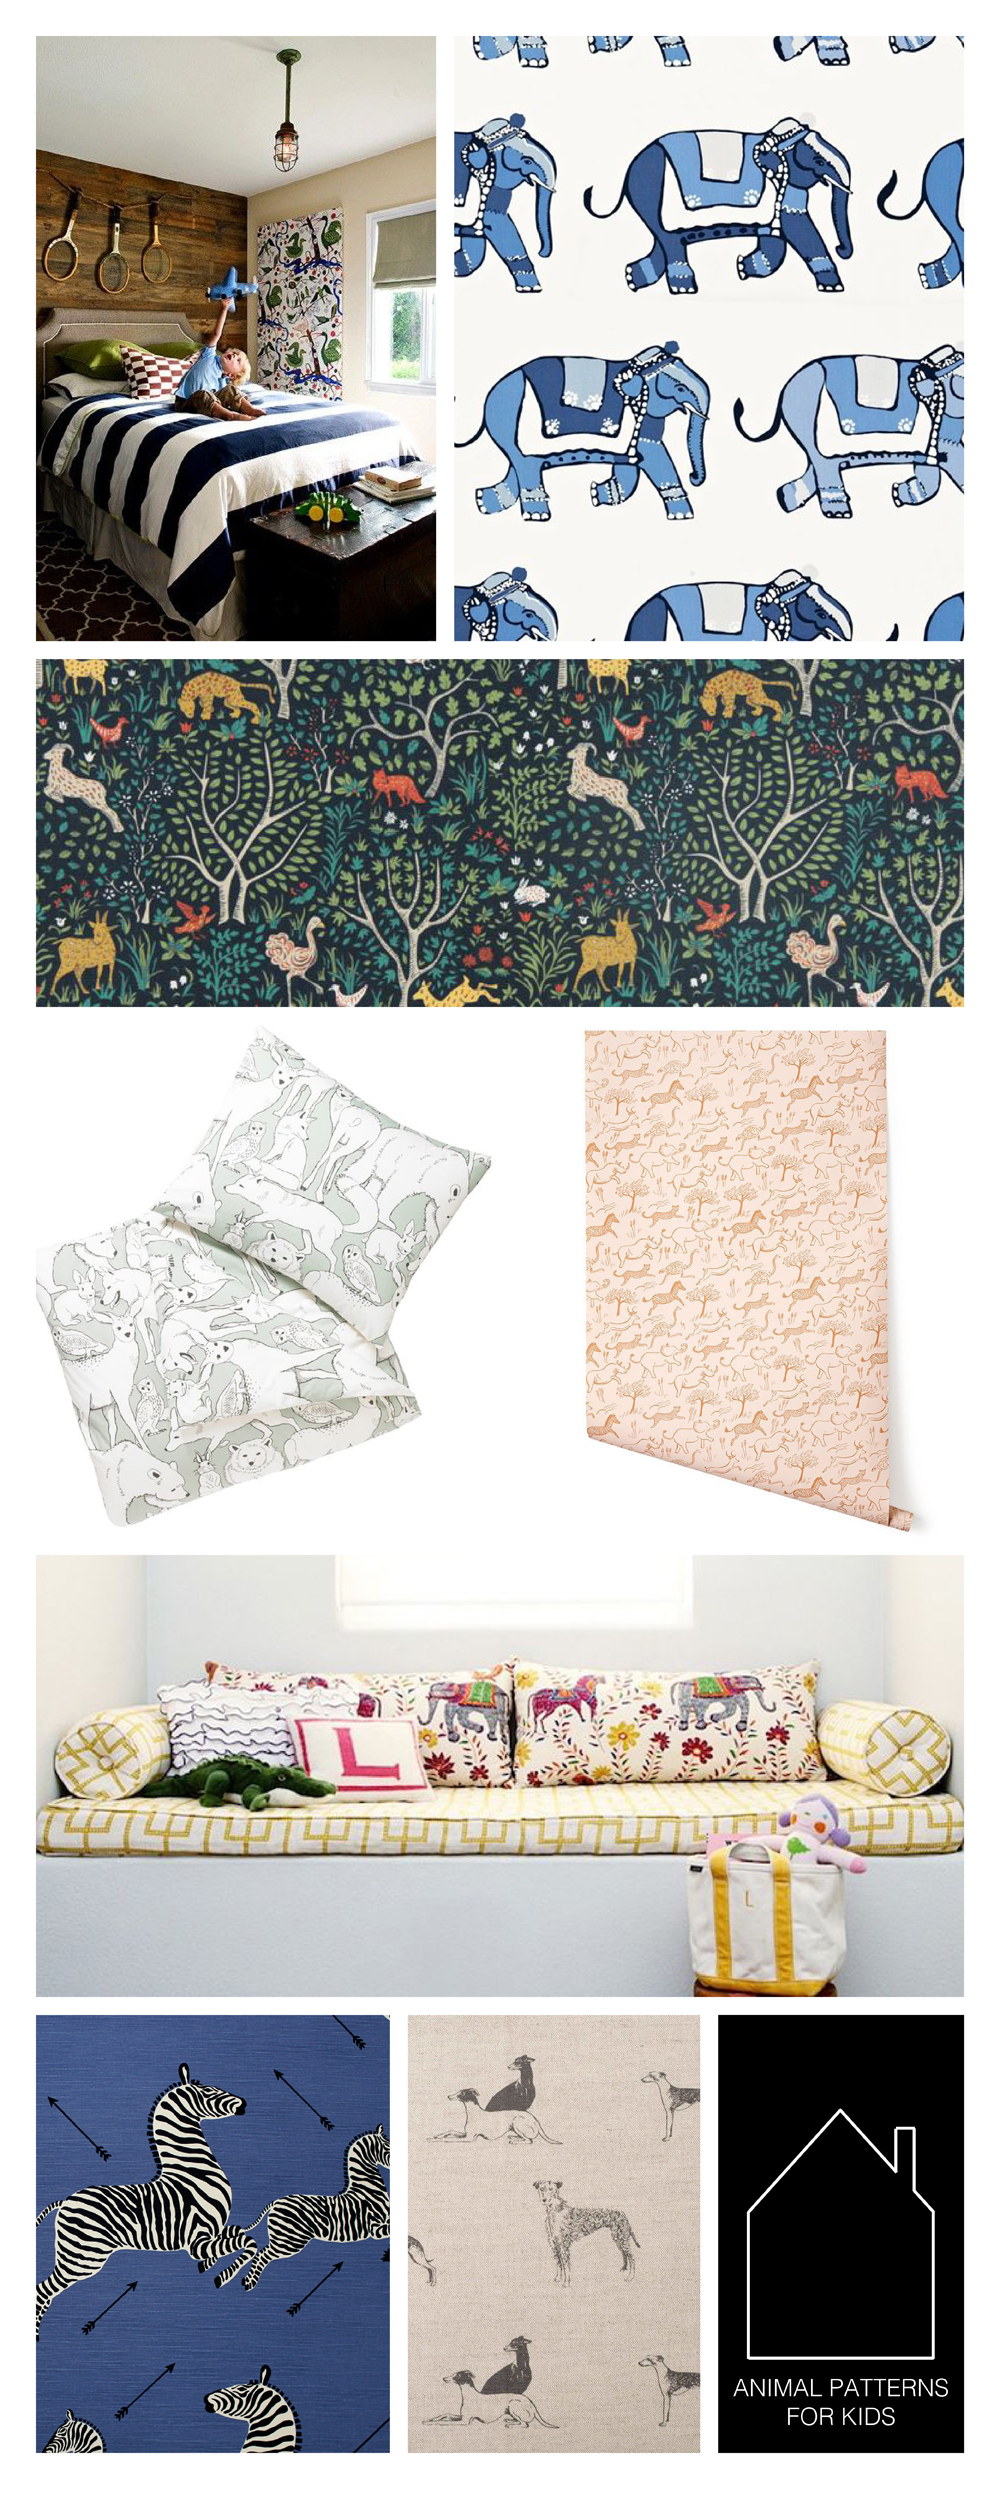 from top left - fabric by Josef Frank, room design source unknown -  Parade by  Schumacher  -  Folkland  by  Dwell Studio  for  Robert Allen -  Celadon Wildwood  by  Dwell Studio  -  Safari (blush)  by  Hygge & West  - home of  Erika Brechtel  mahout pattern  by  John Robshaw for Duralee -  Zebras  by  Scalamandre  -  Long Dog  by  Emily Bond